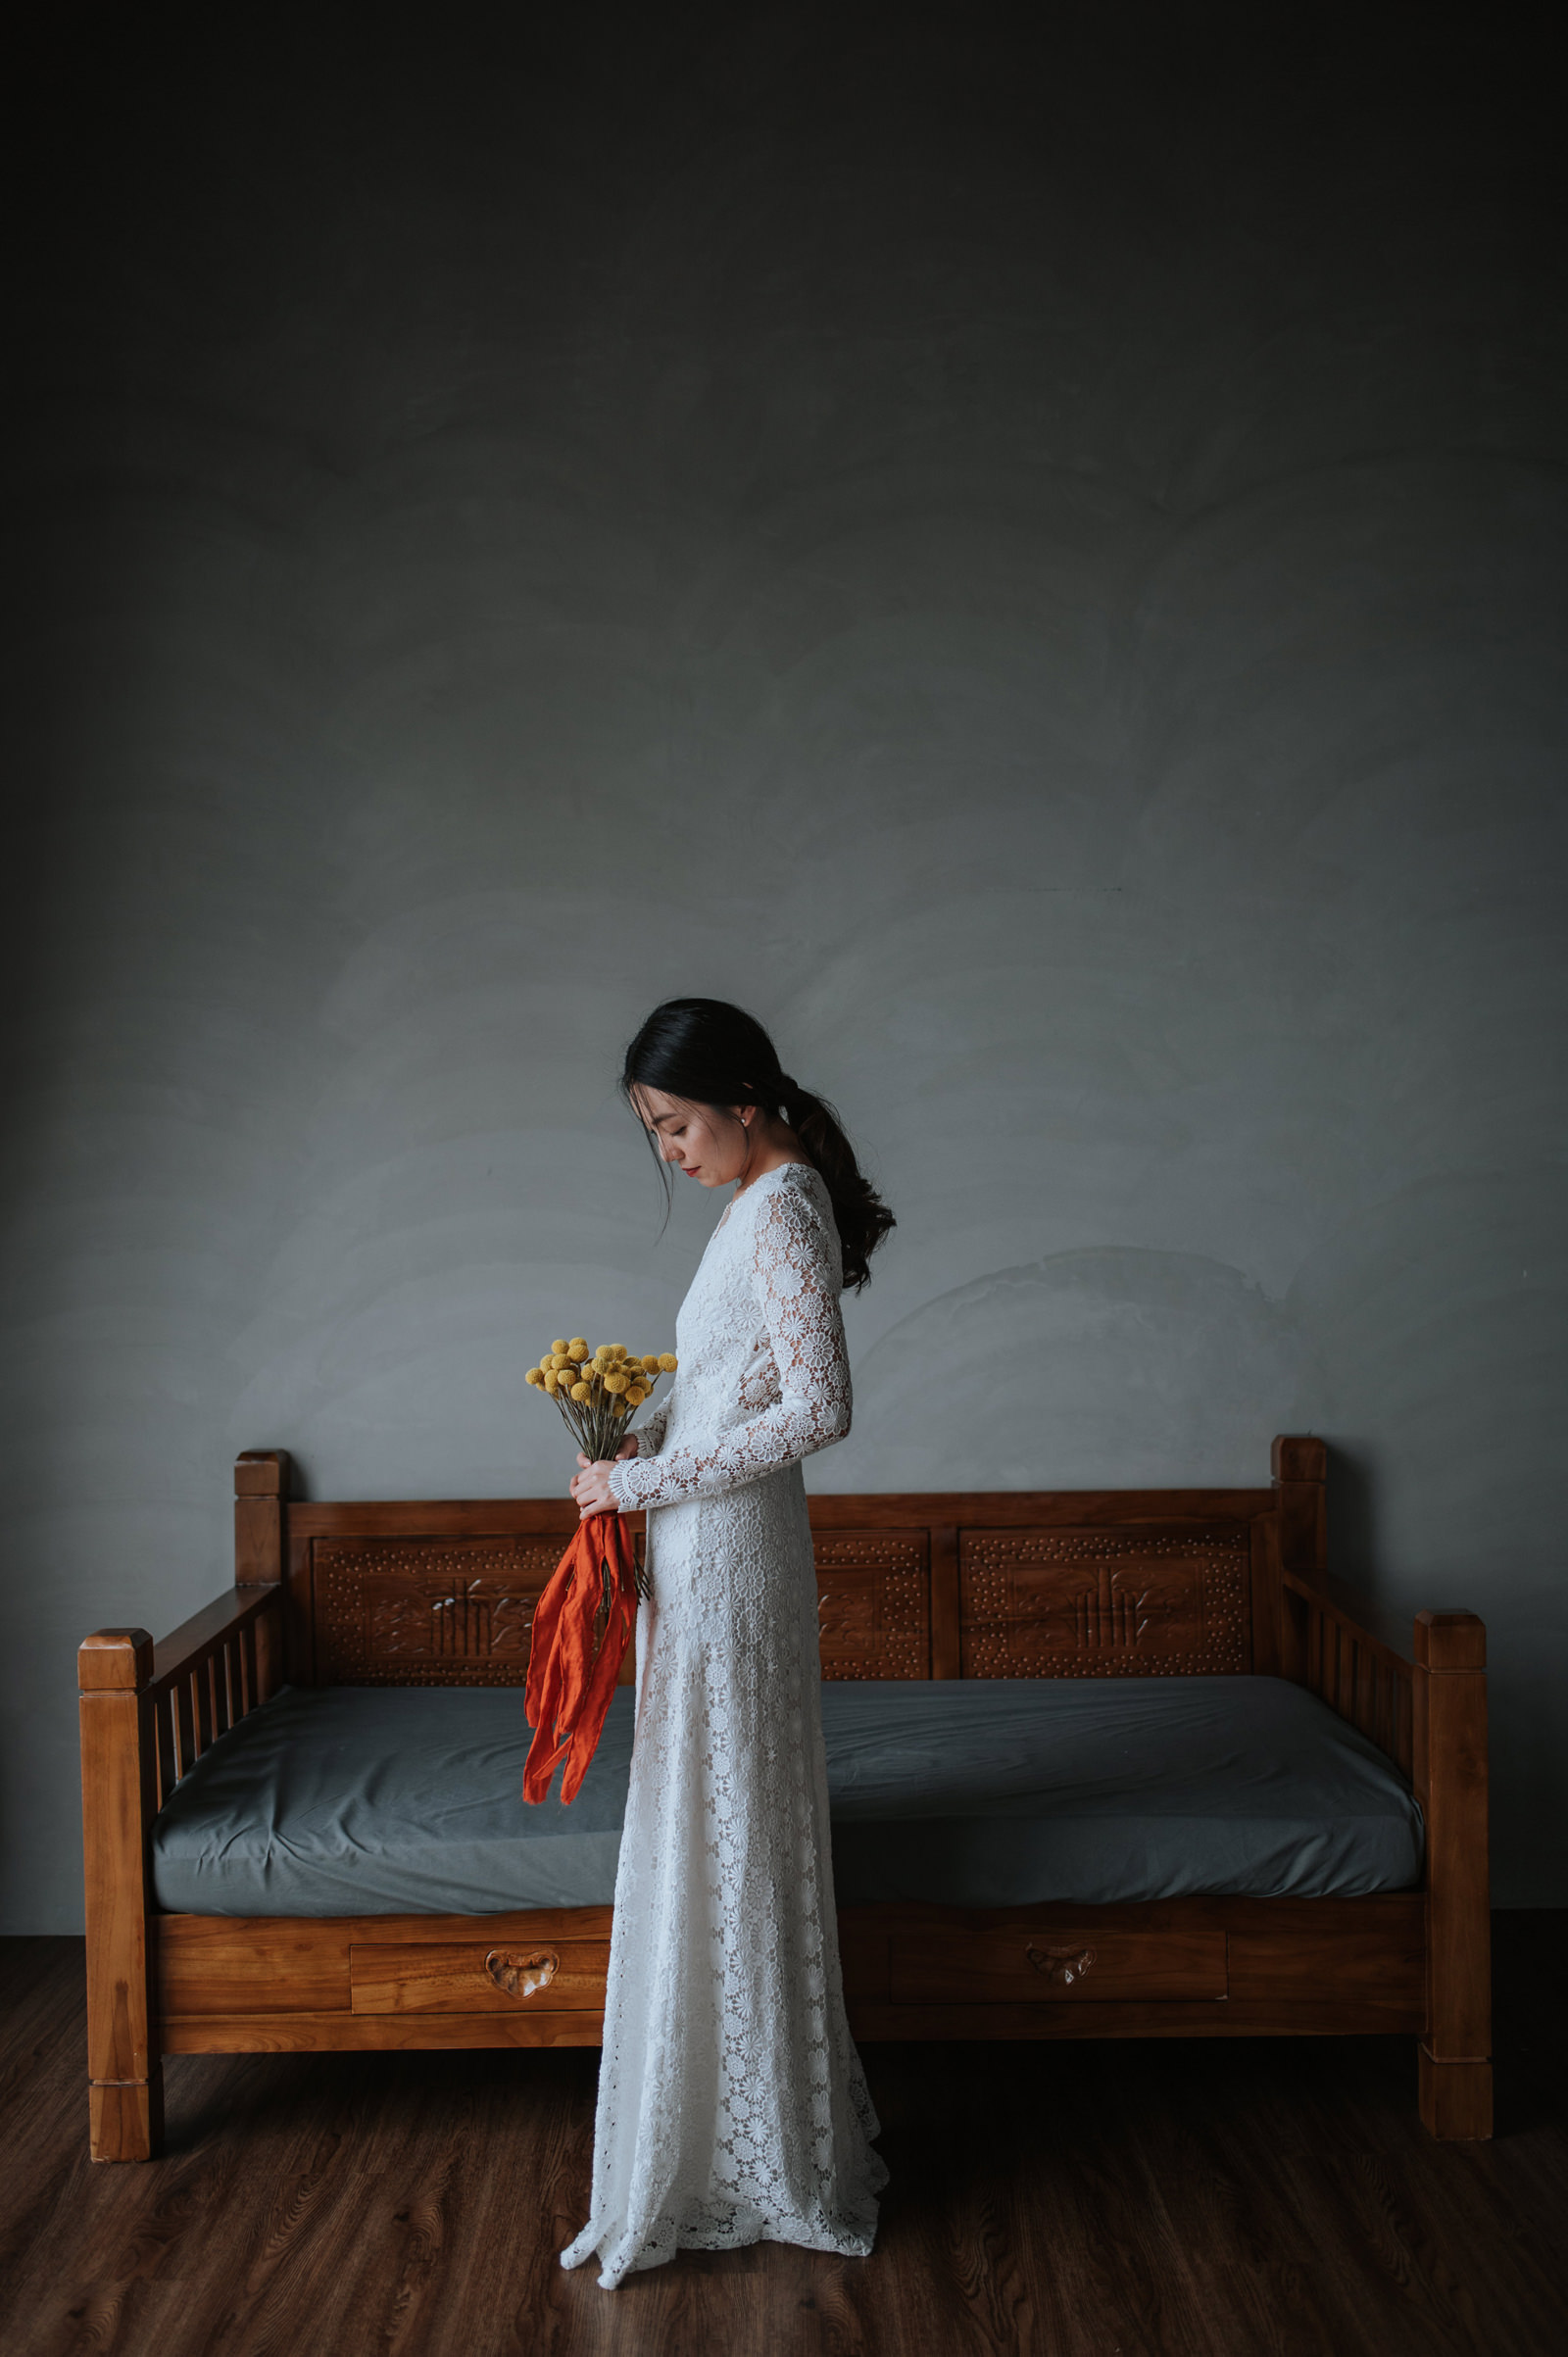 Elegant bride portrait against day bed - photo by Mun Keat Studio